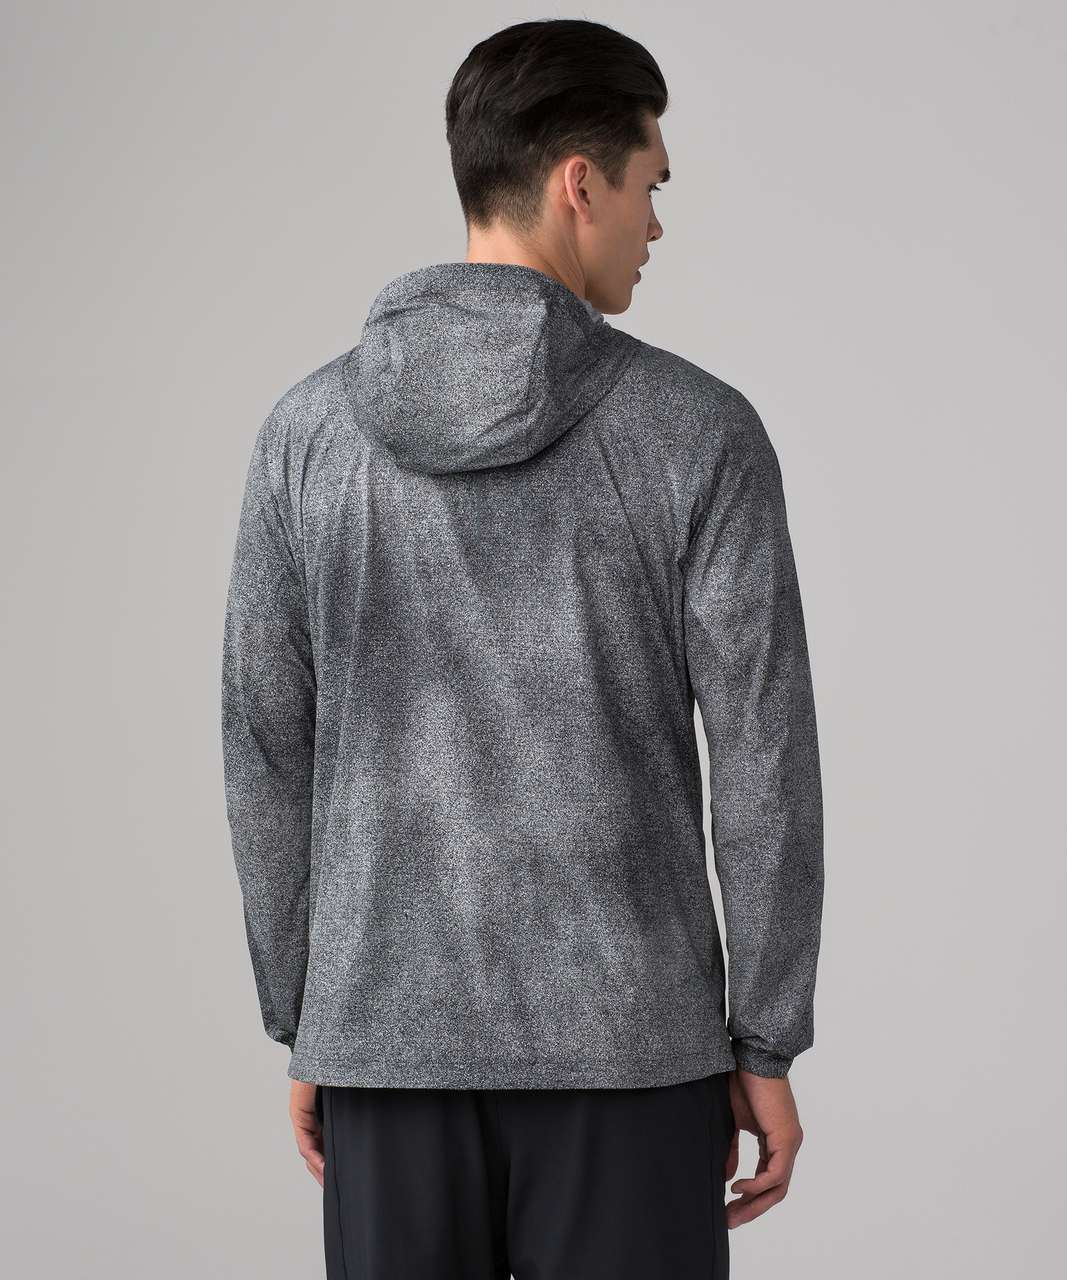 df99de34d Lululemon Active Jacket - Carbon Mist Alpine White Graphite Grey ...